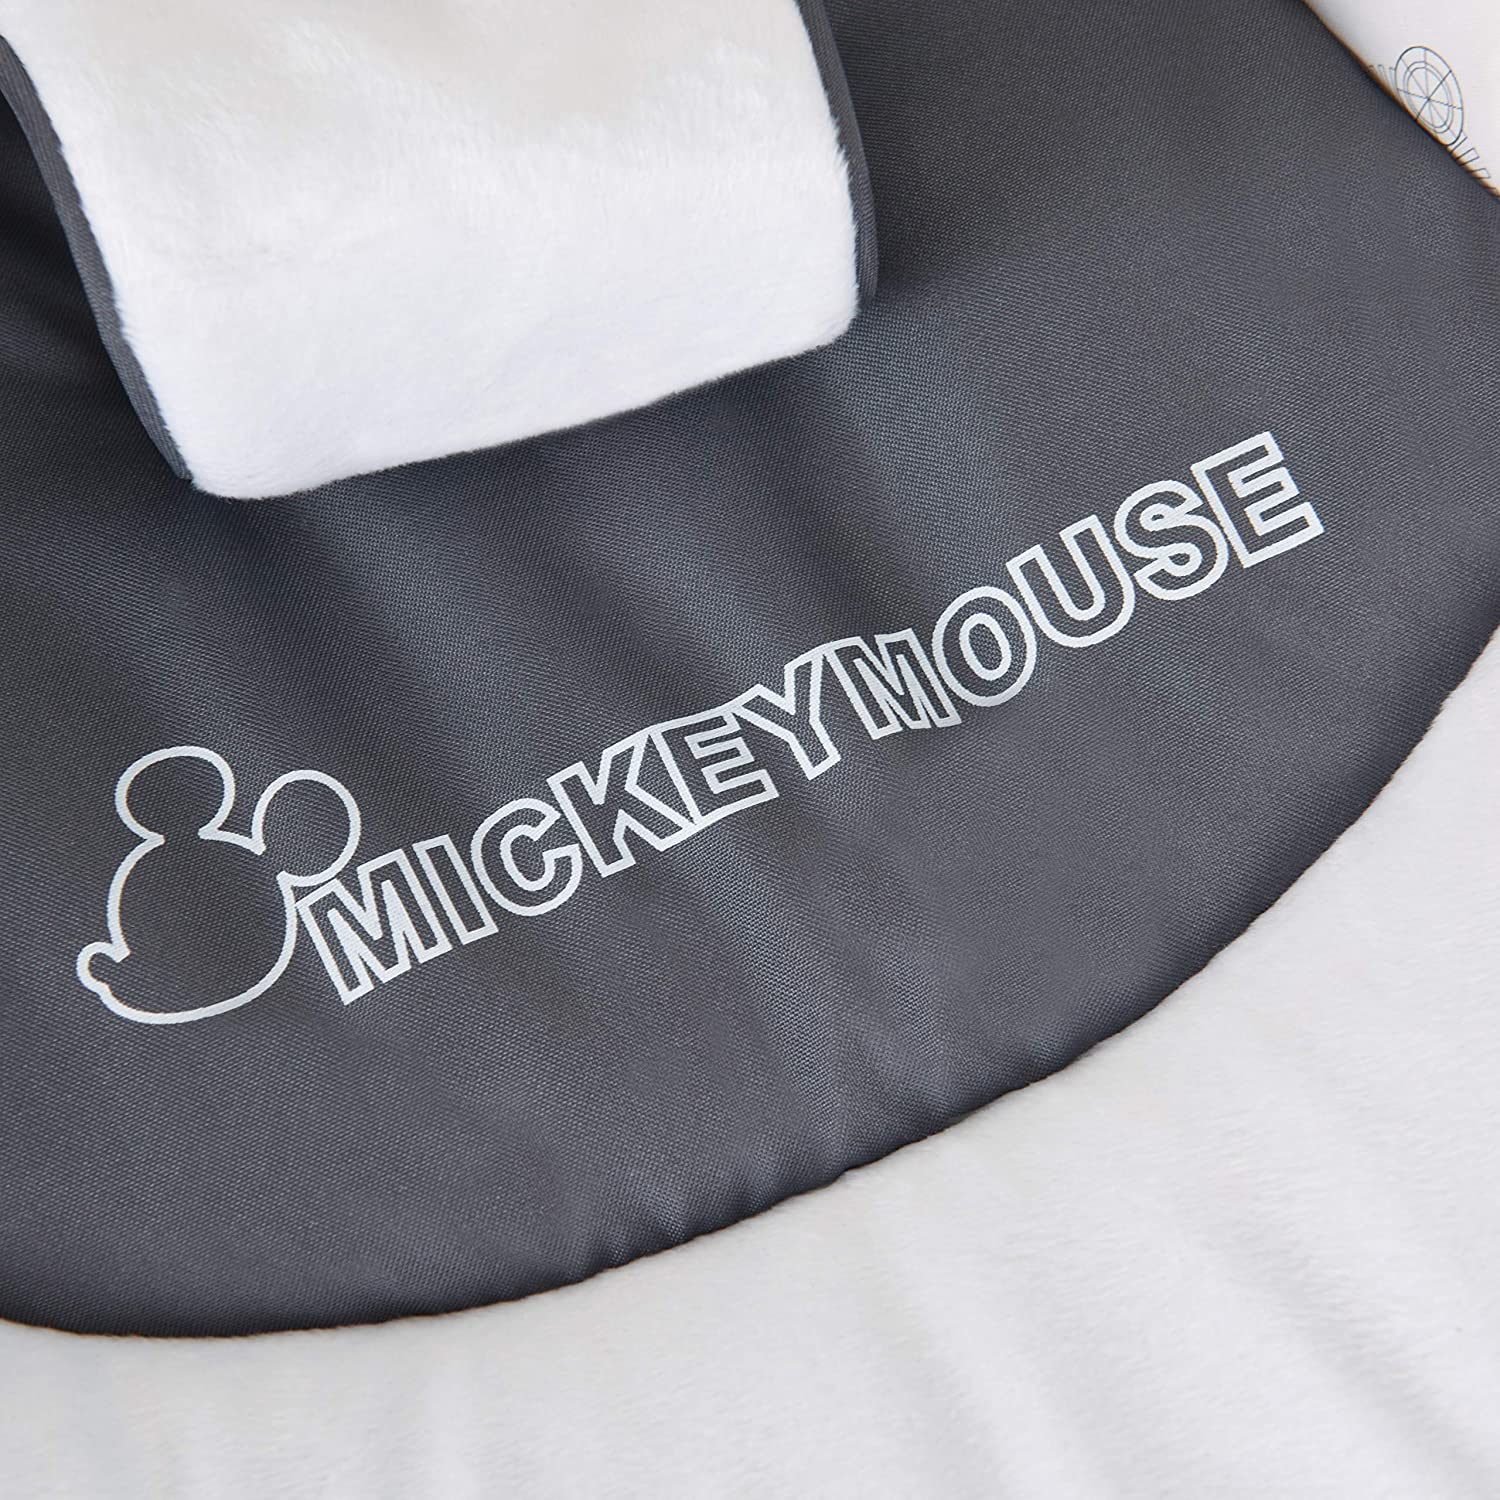 Adjustable Backrest Baby Rocker from Birth Up To 9 kg Hauck Leisure Carry Straps Mickey Cool Vibes Tilt-Resistant Bouncer with Removable Play Arch Swing and Chair Safety Harness